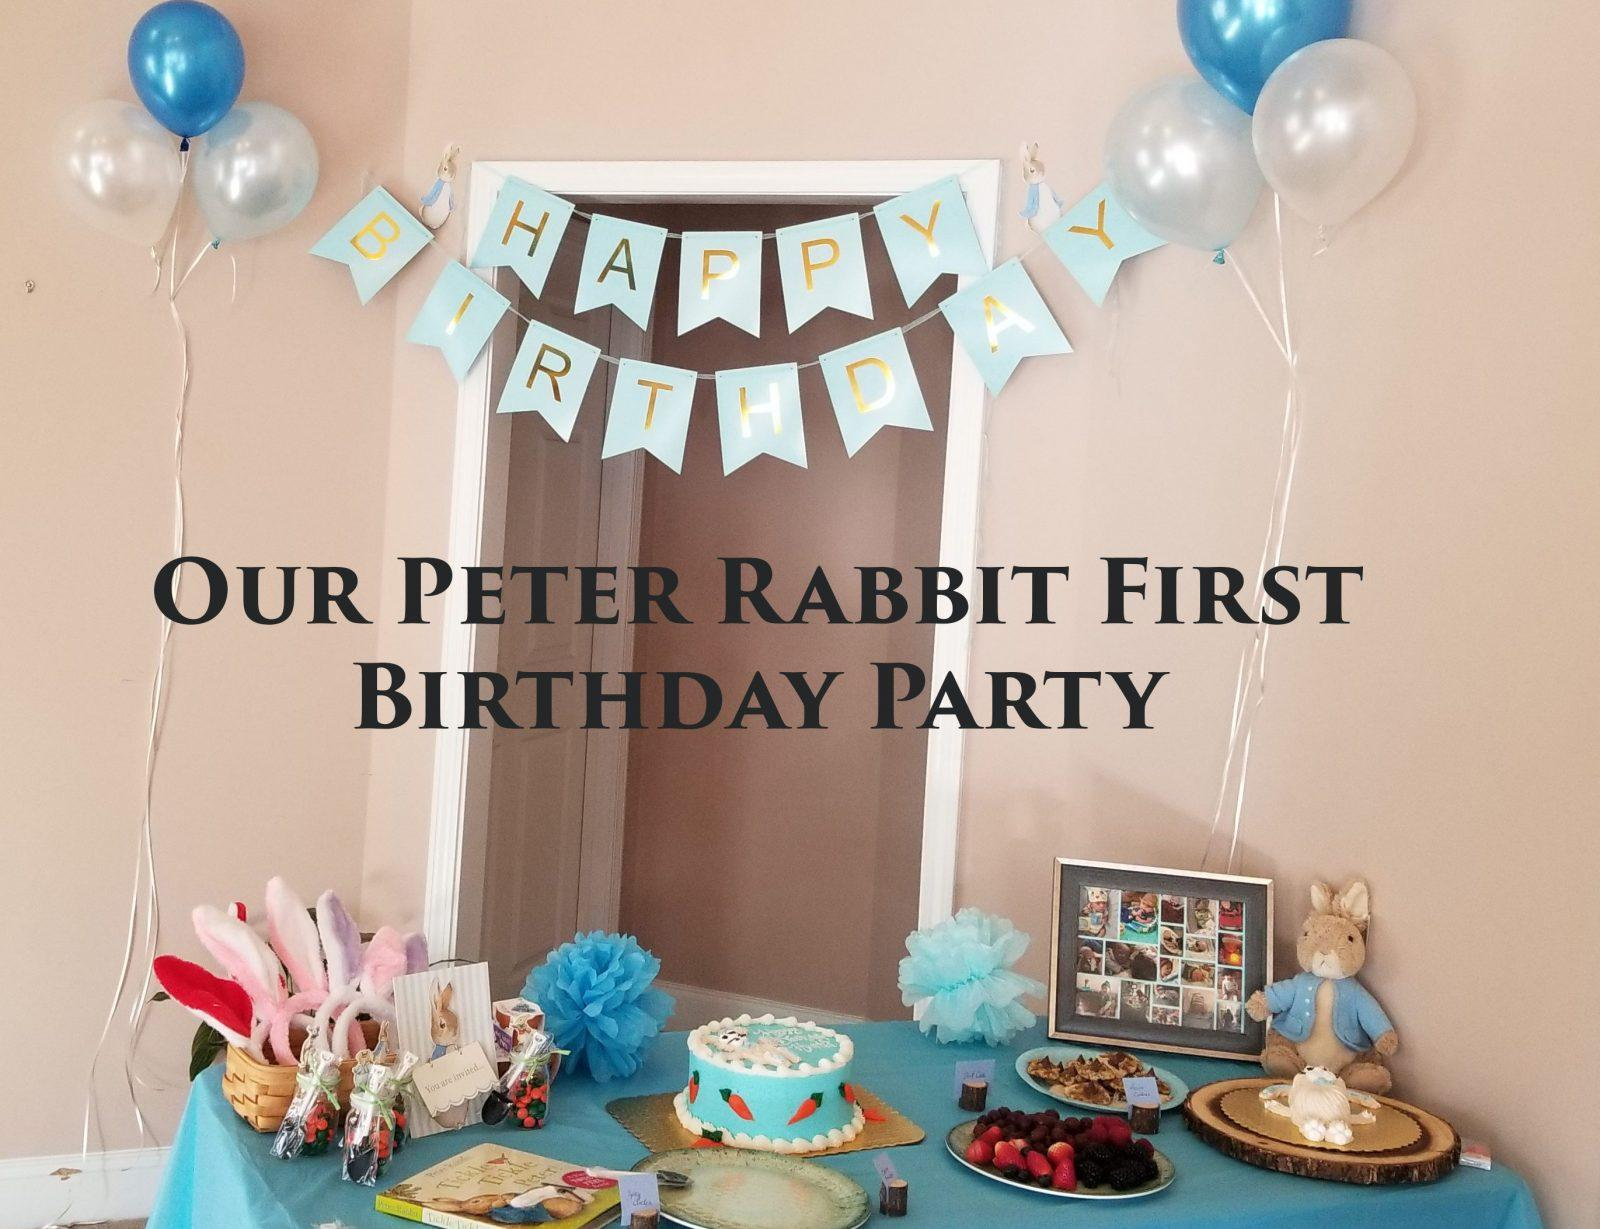 Our Peter Rabbit Birthday Party